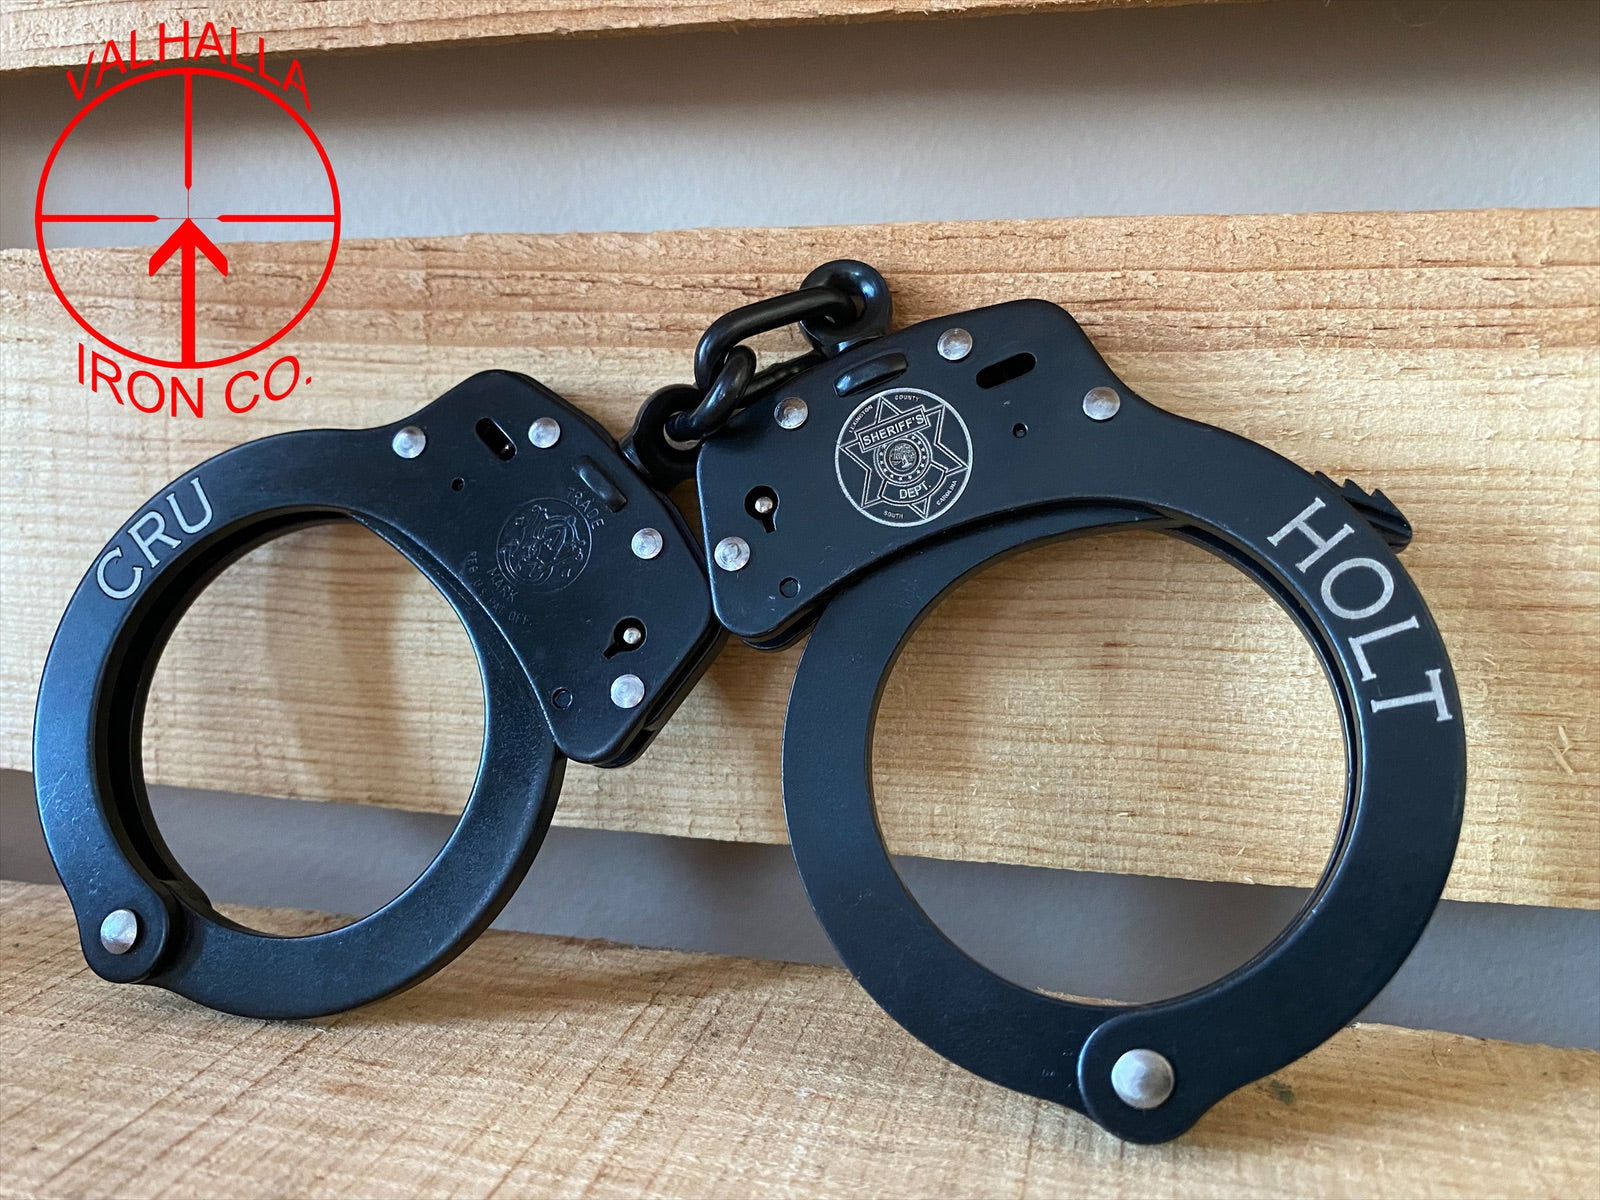 Custom Badge, Name, and Unit on Handcuffs